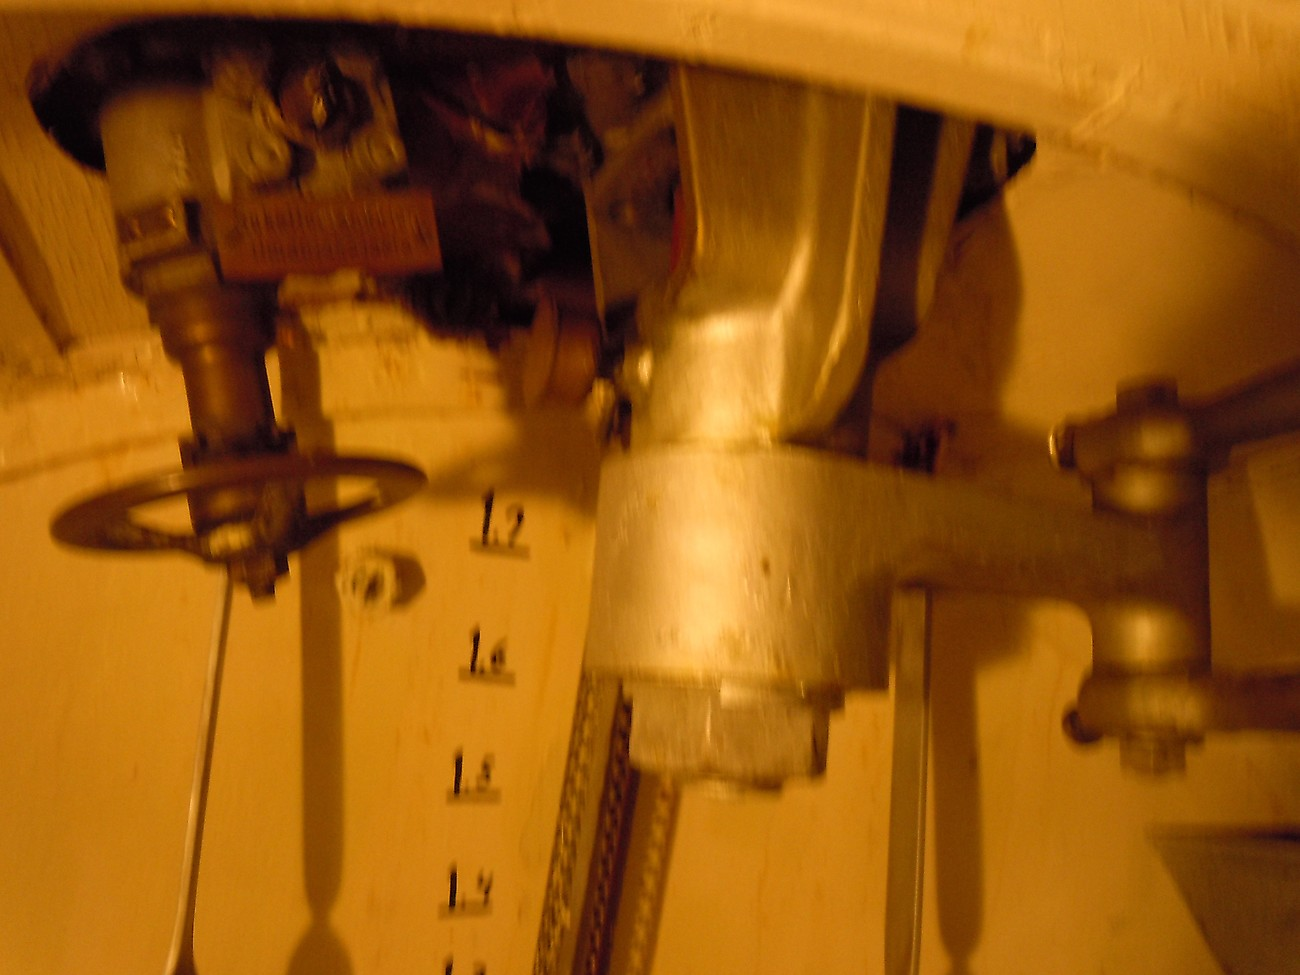 Linkage for rudder.